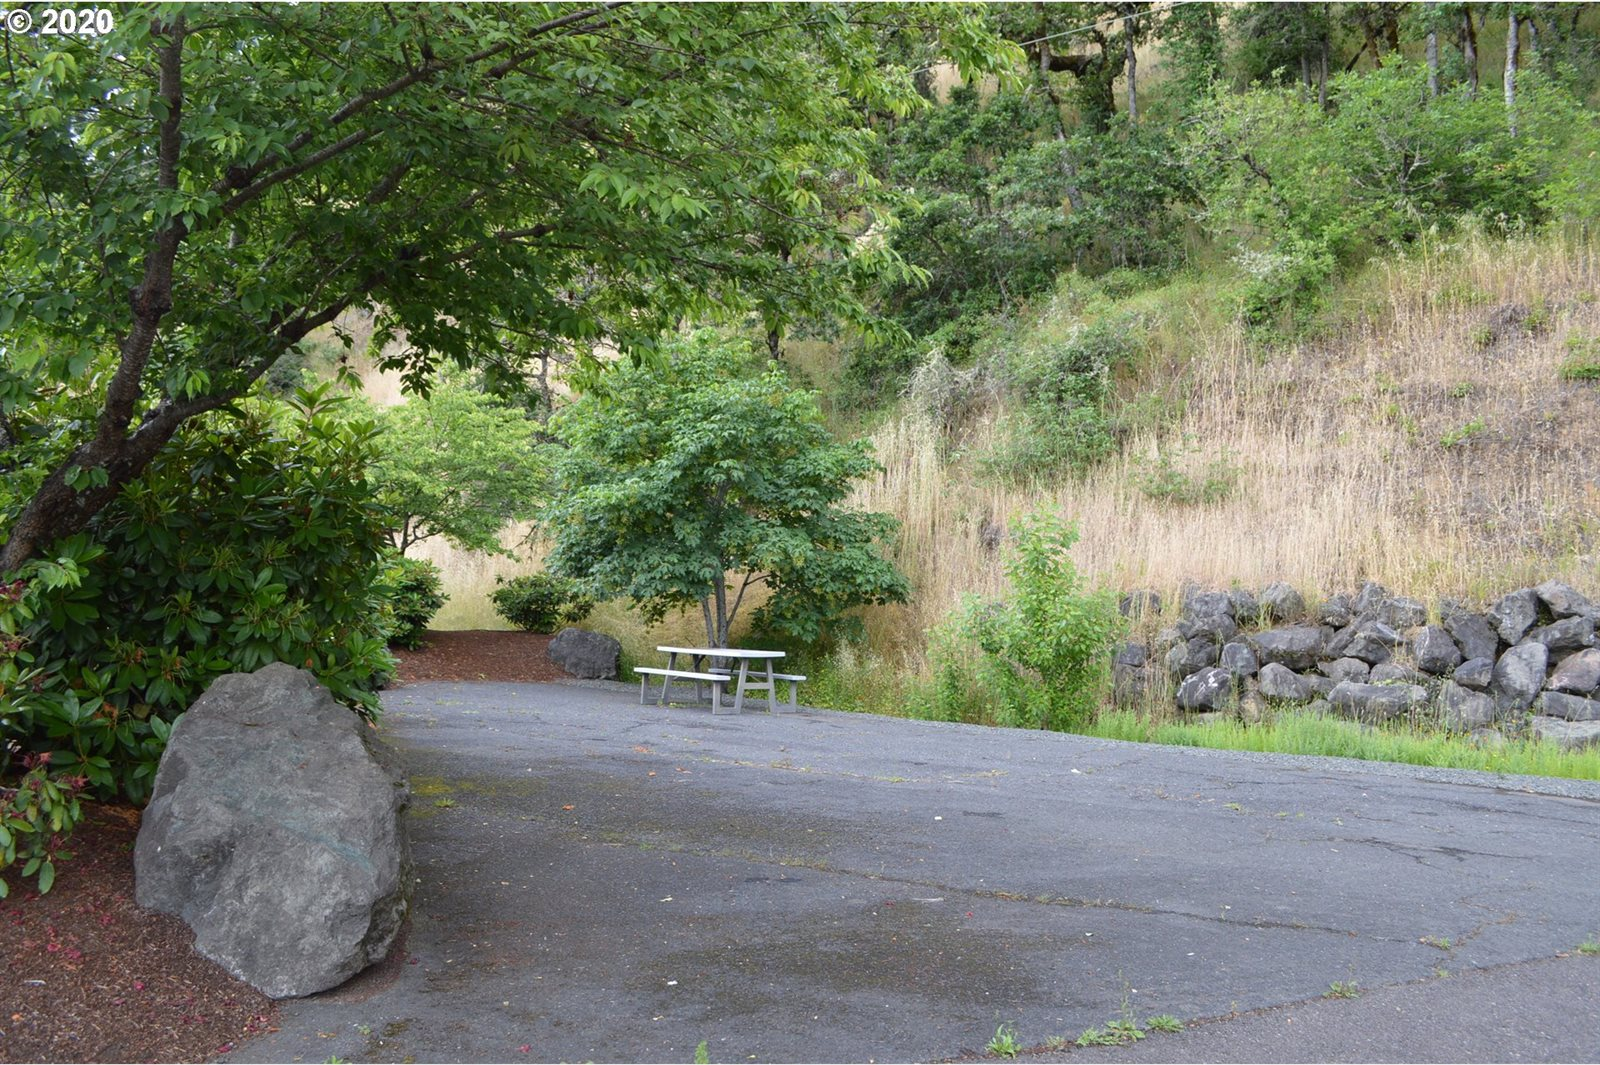 442 West B Ave, Drain, OR 97435